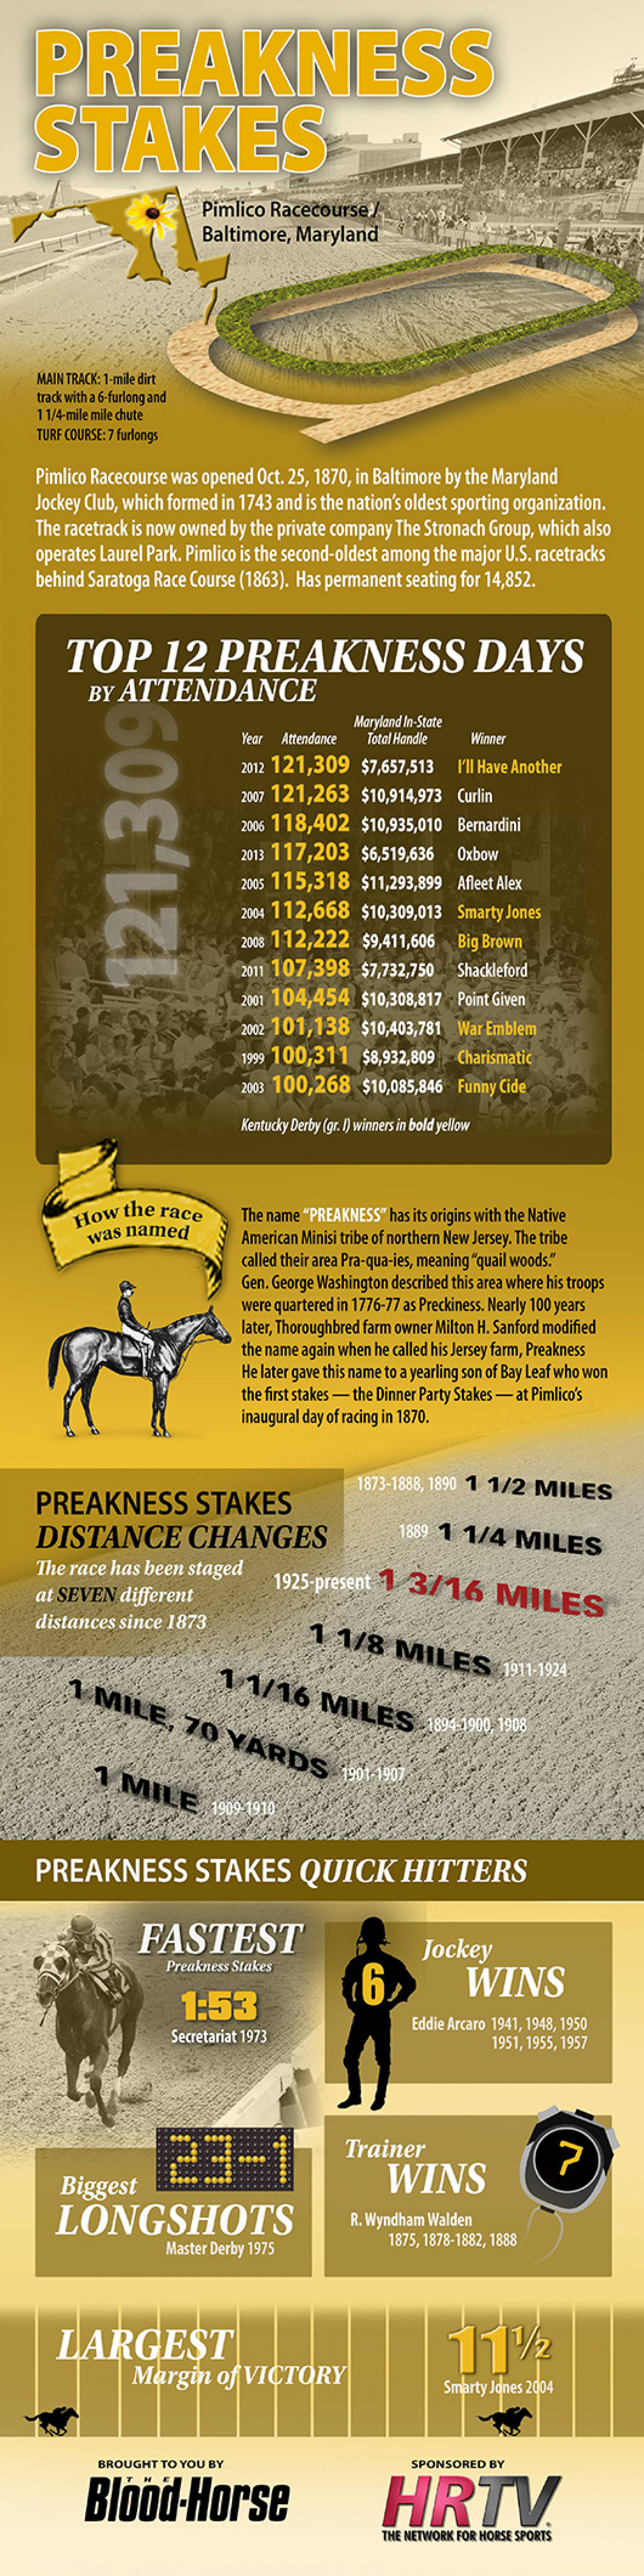 Preakness Stakes Infographic